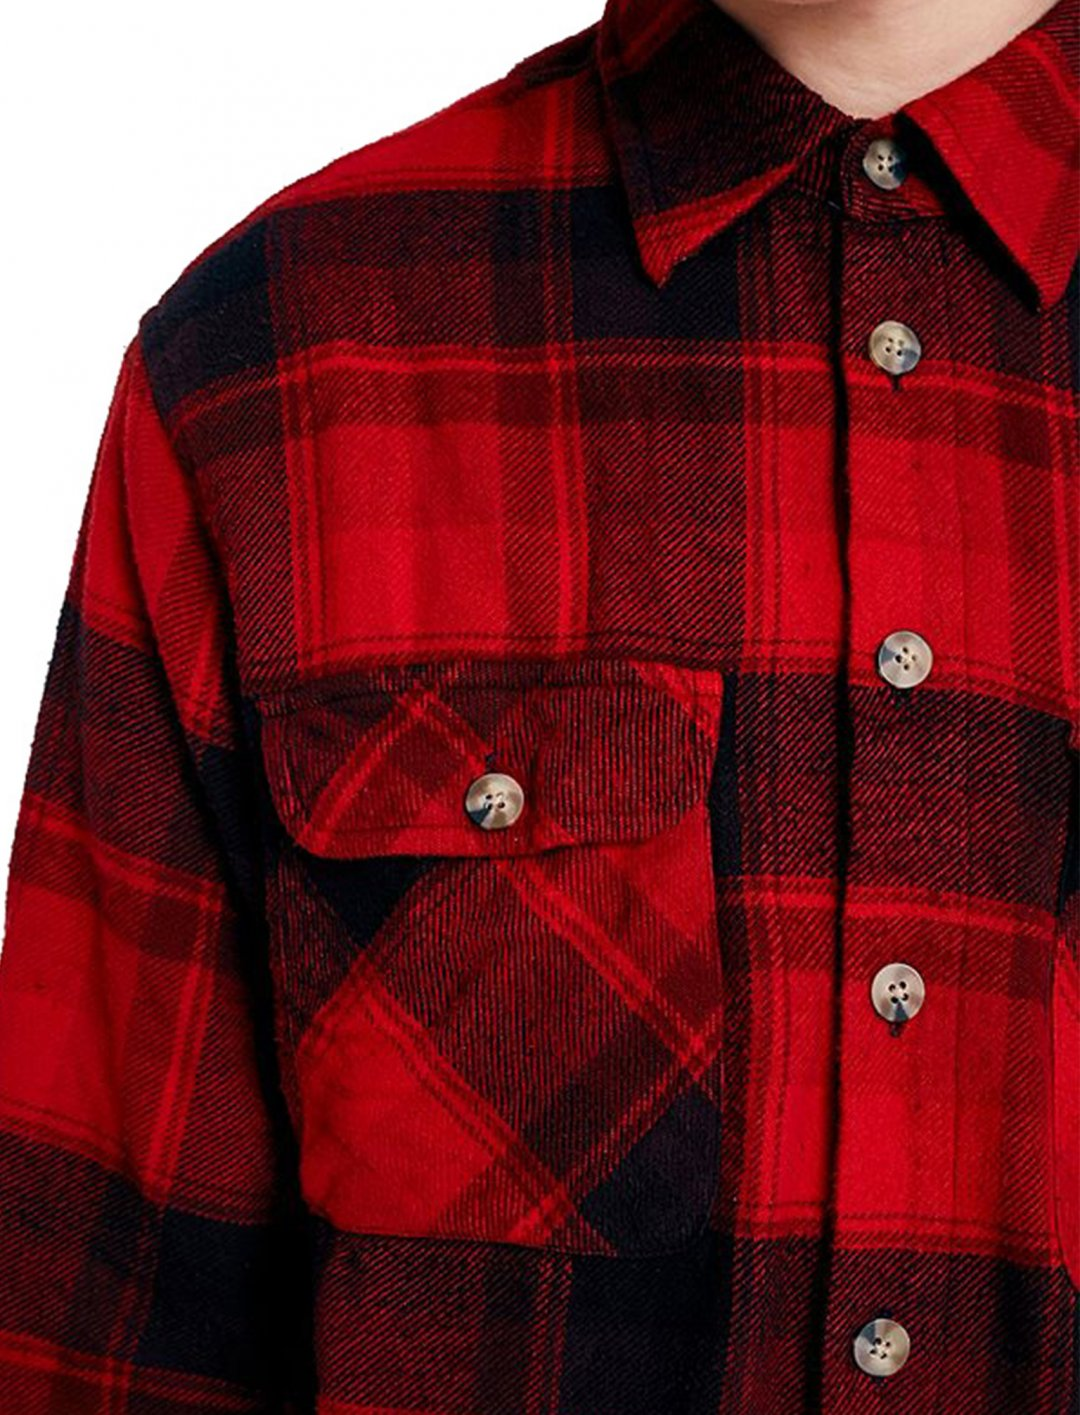 Overdyed Flannel Shirt Clothing Urban Renewal